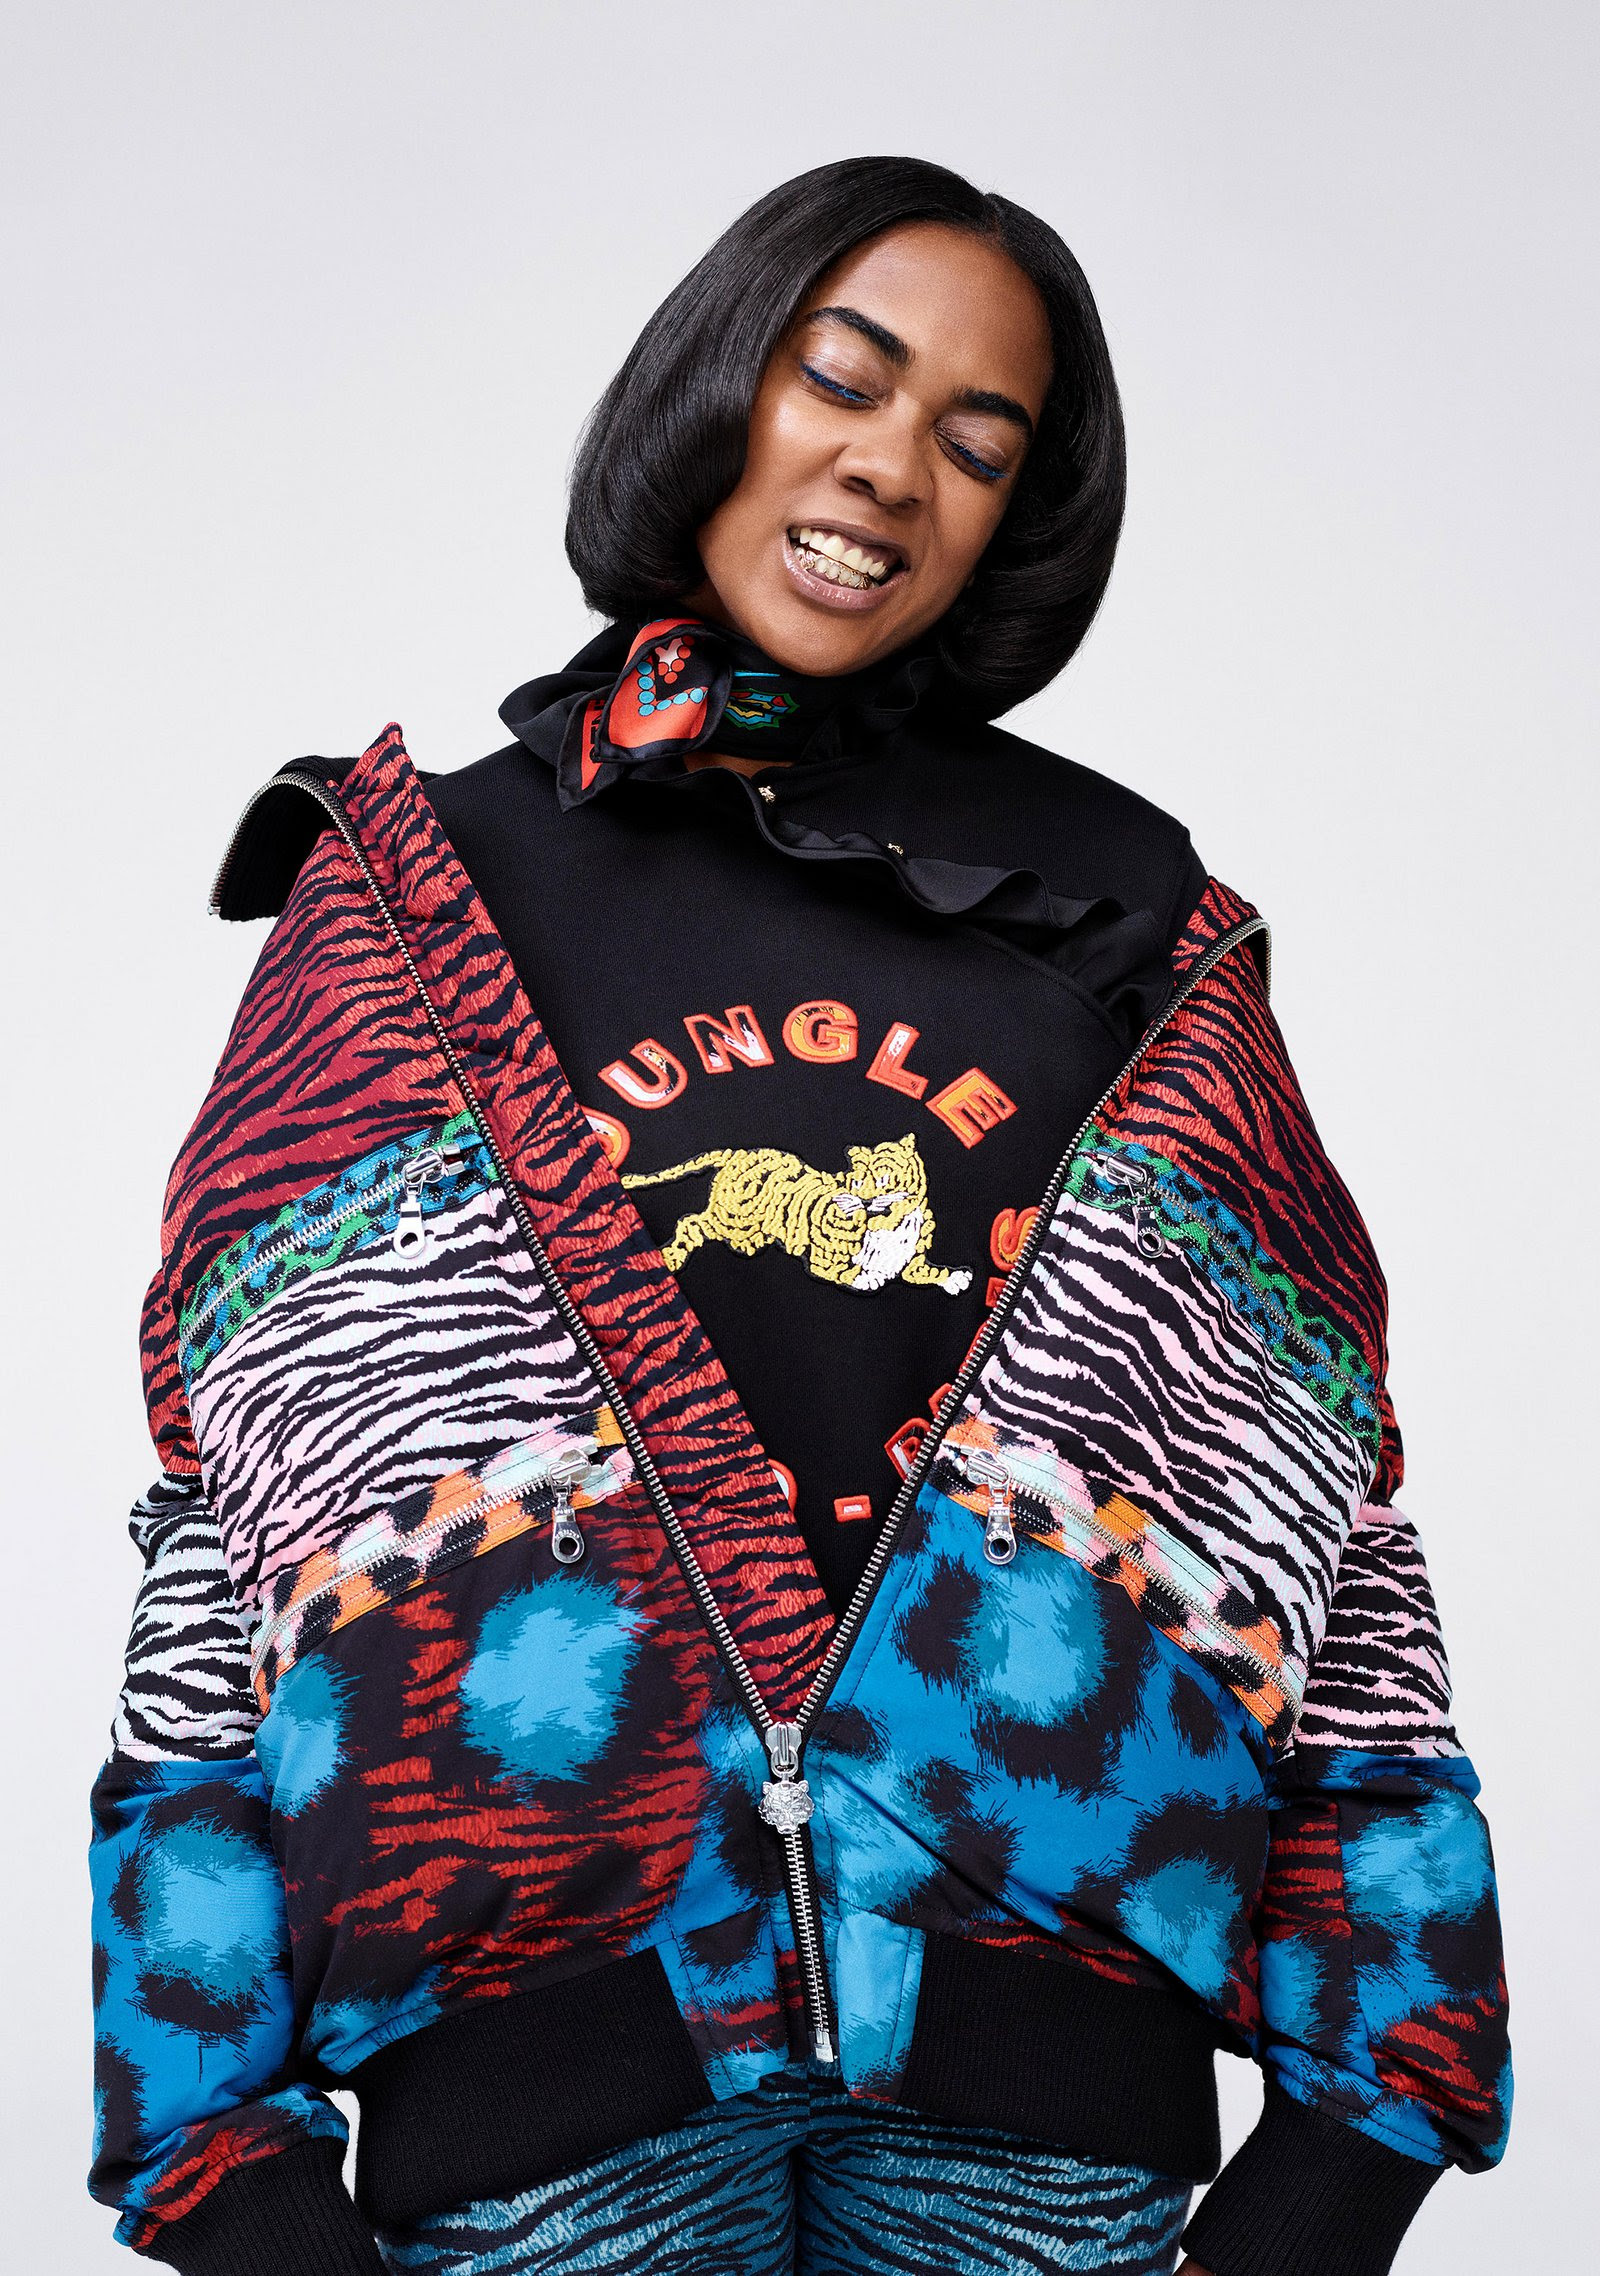 http://media.vogue.com/r/w_1600//wp-content/uploads/2016/10/07/20-kenzo-hm-lookbook.jpg